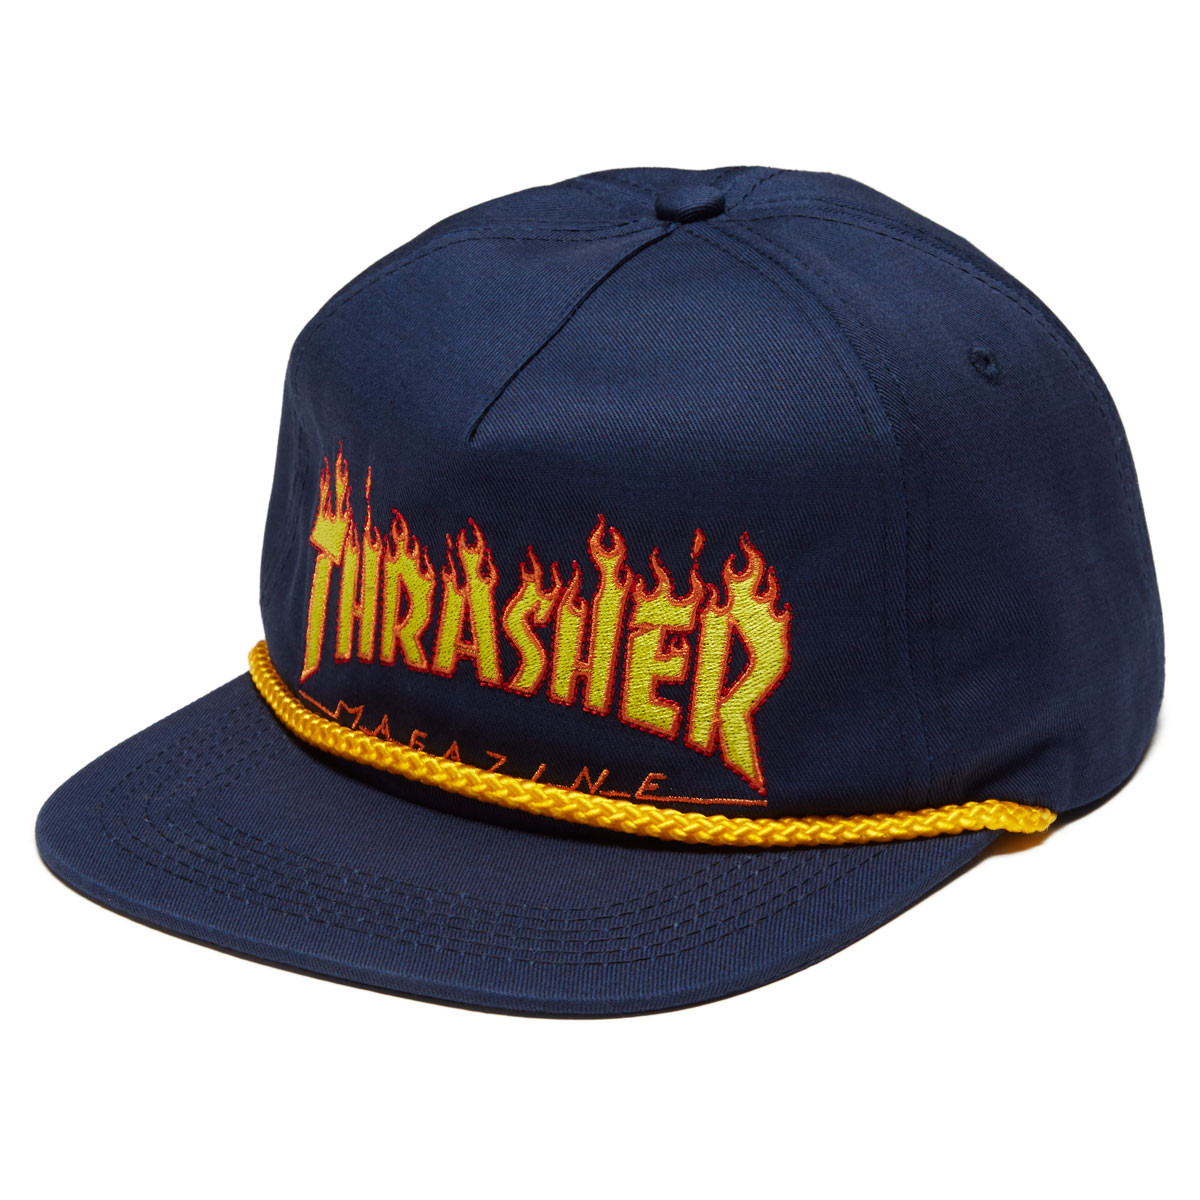 Thrasher Flame Rope Snapback Hat - Navy d045afc63